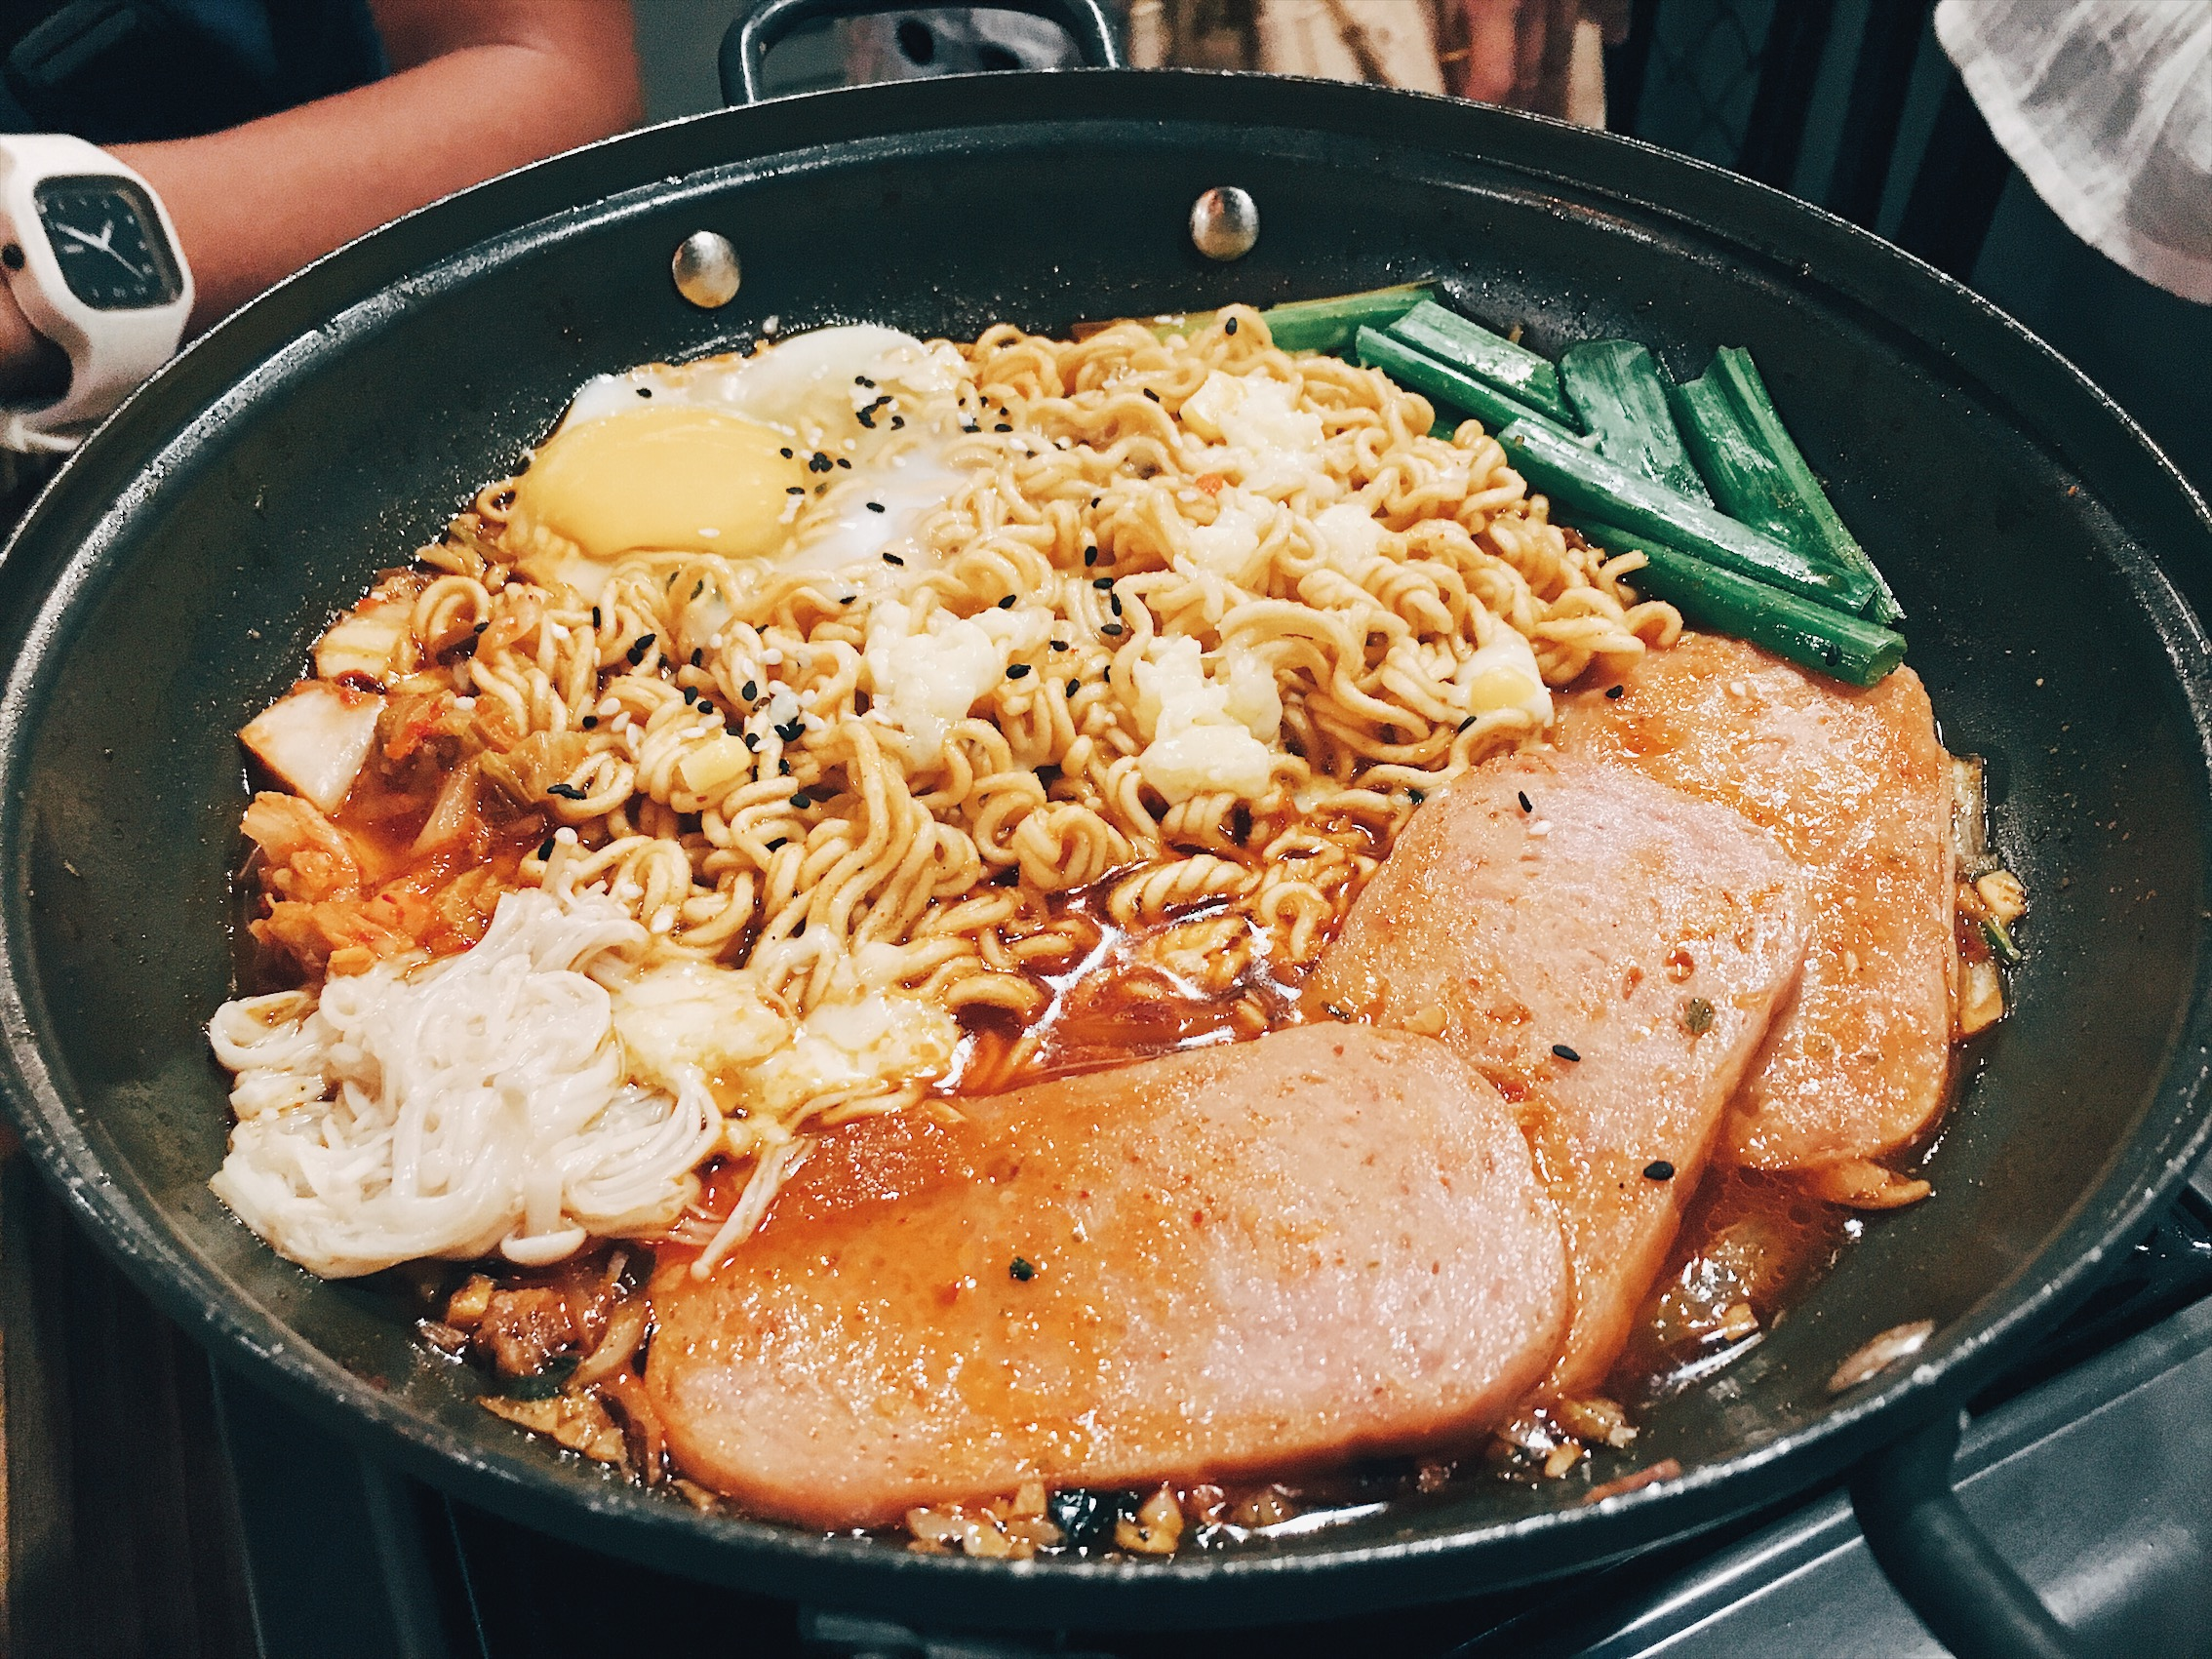 Fat Dois Cebu - Spicy Noodles with Spam and Cheese (Php180)